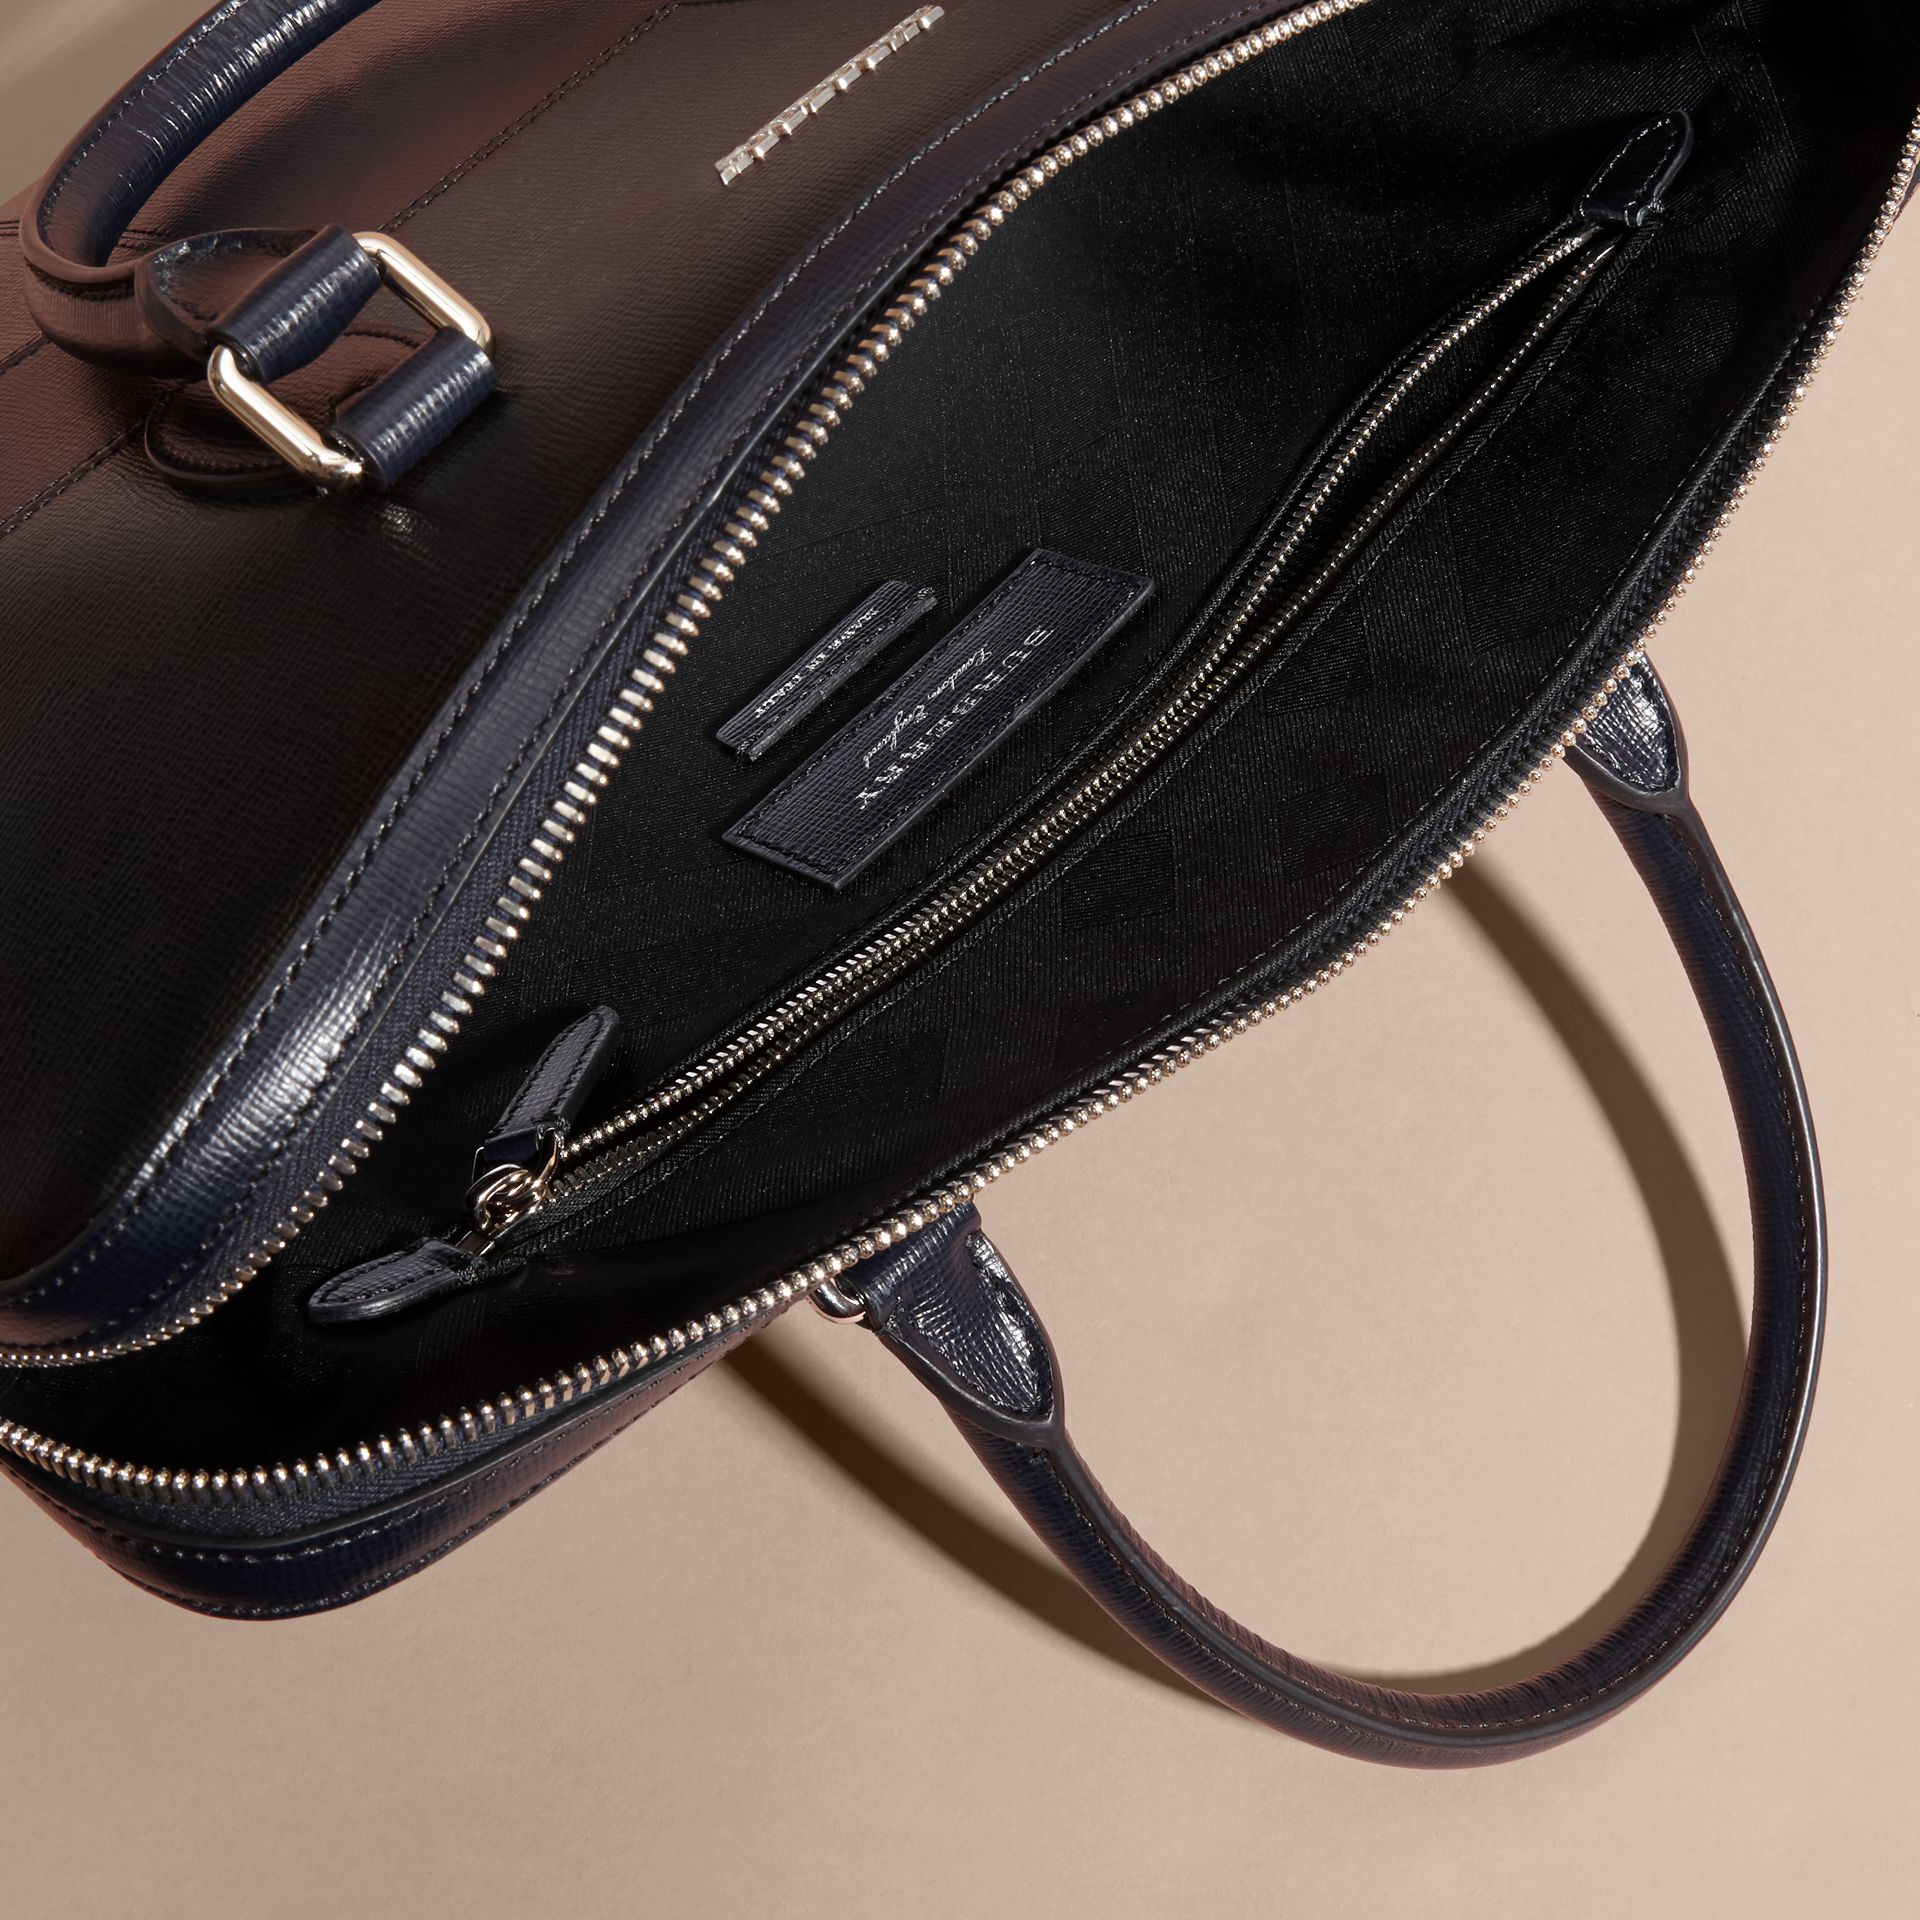 Dark navy The Slim Barrow Bag in Patchwork London Leather Dark Navy - gallery image 6